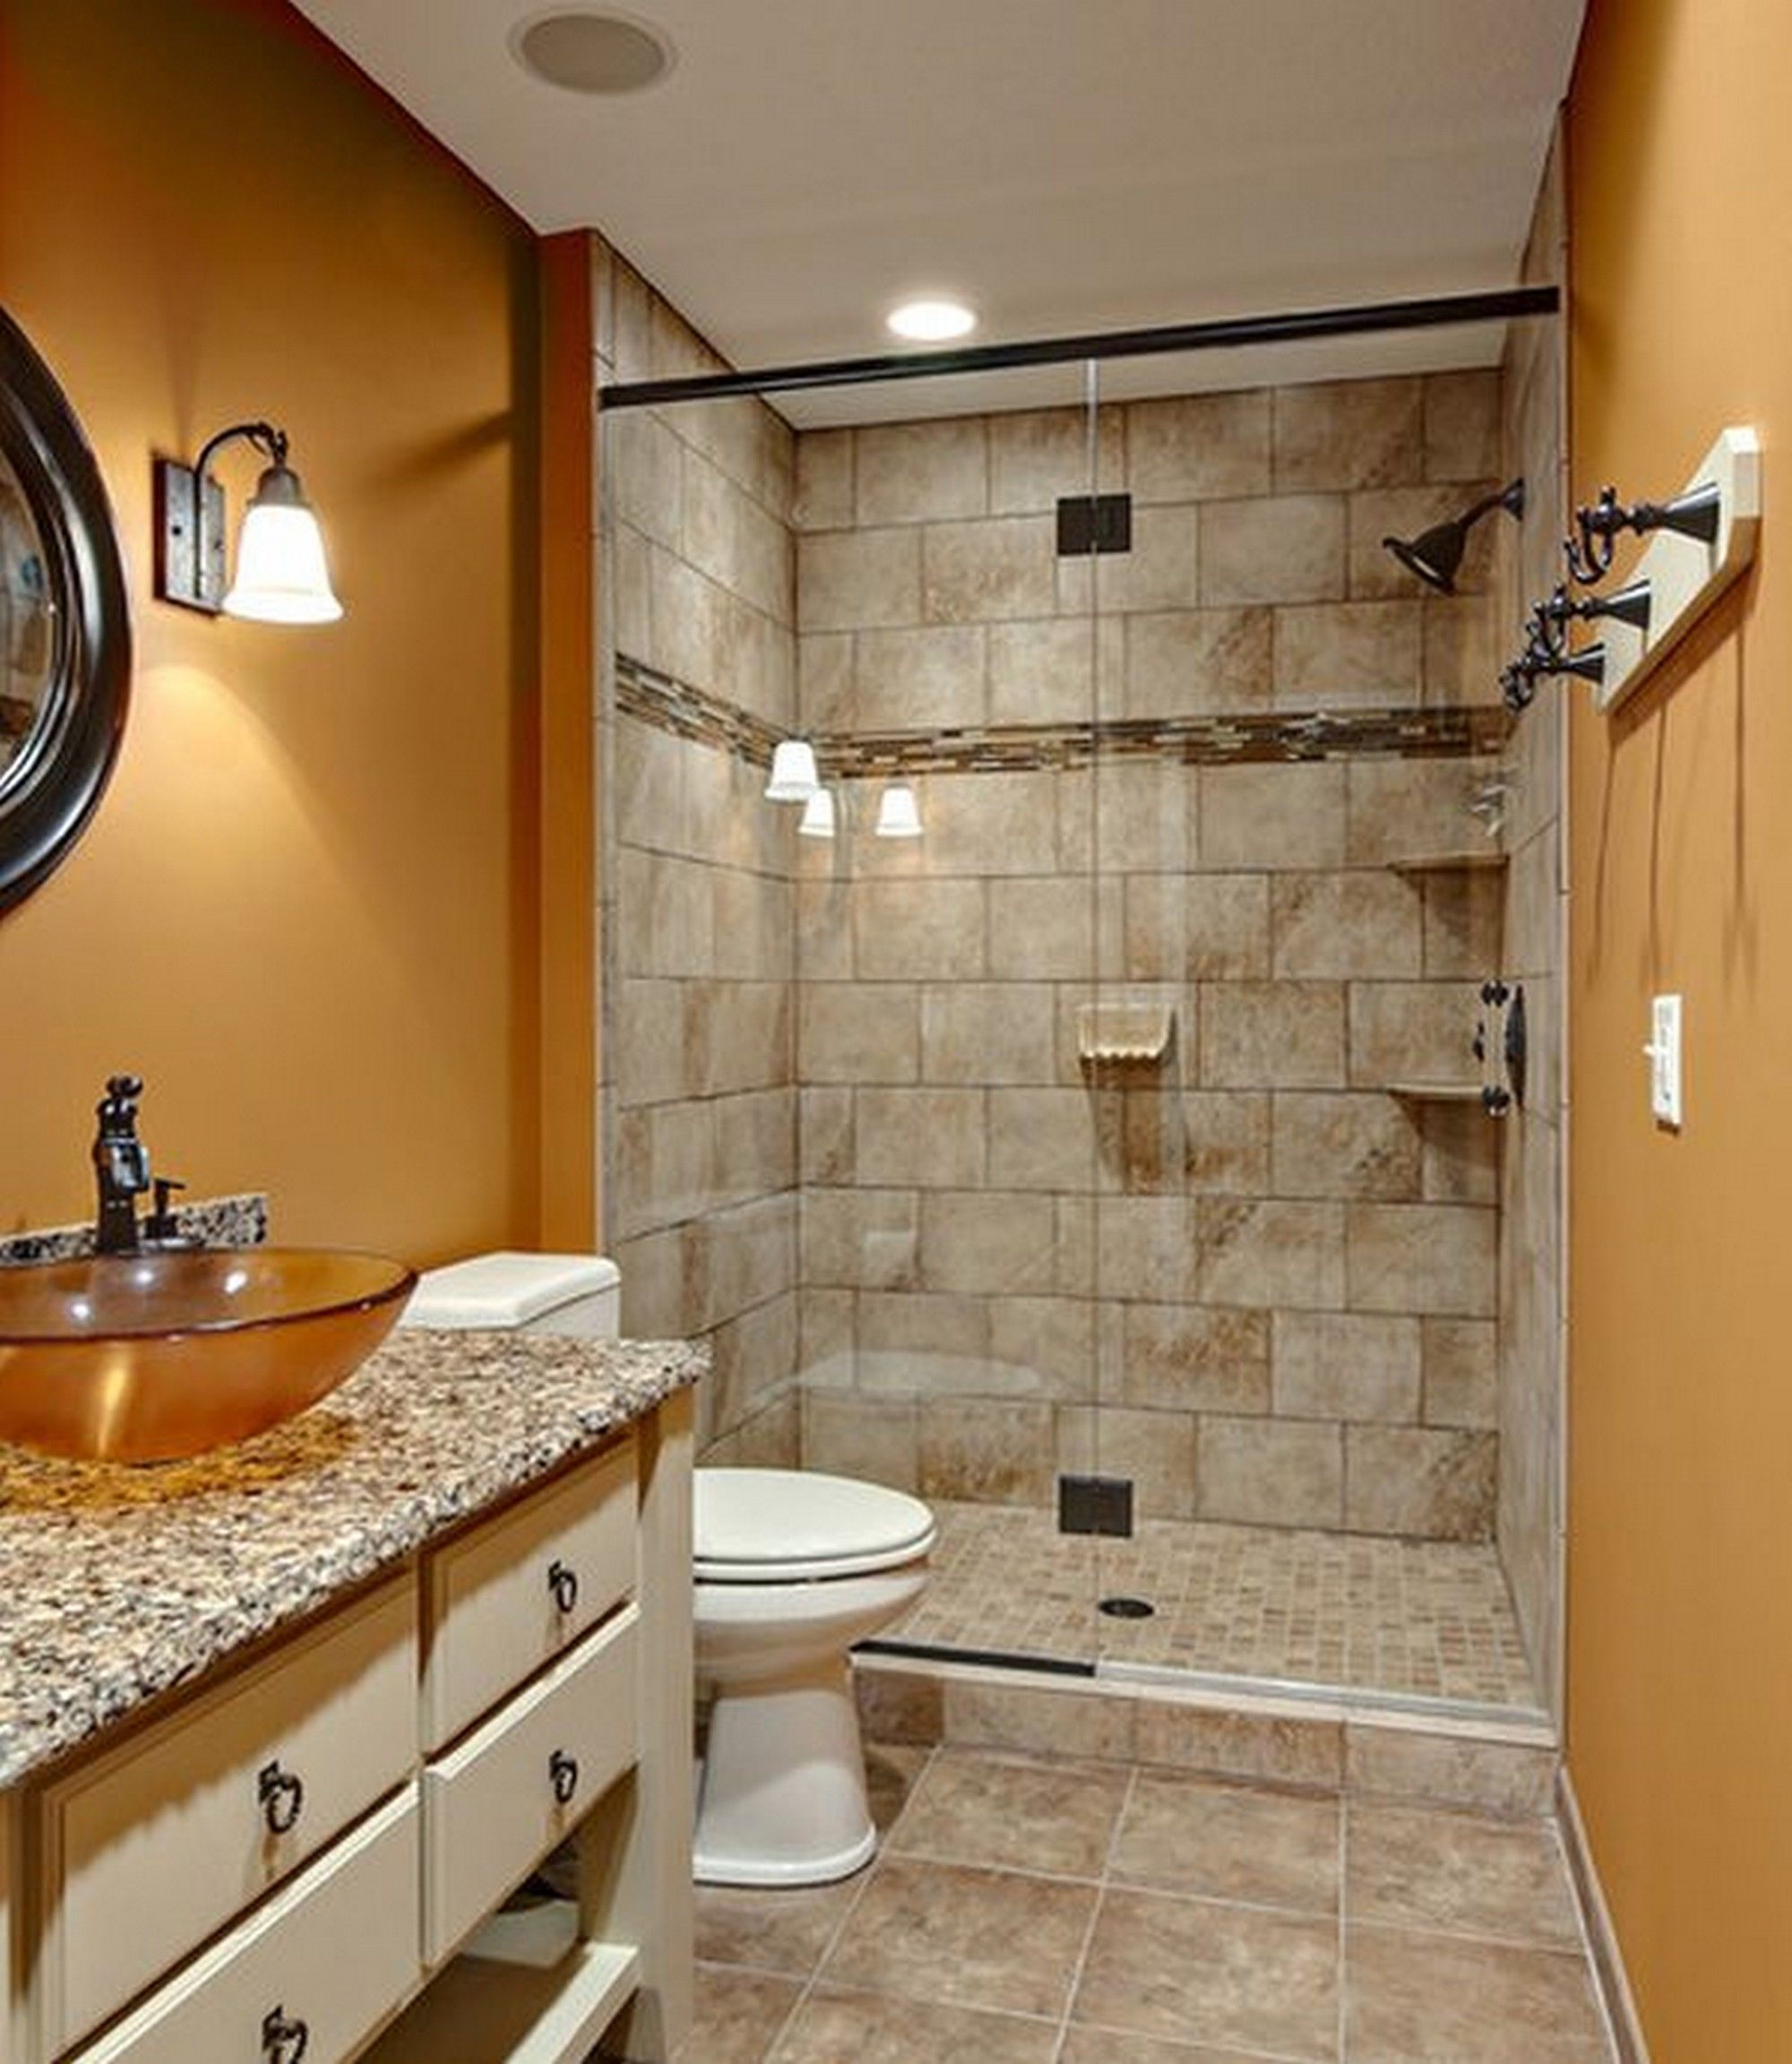 elegant in model at homesfeed master looking eco ideas bathroom for shower remodel housing and walk green windows menlo